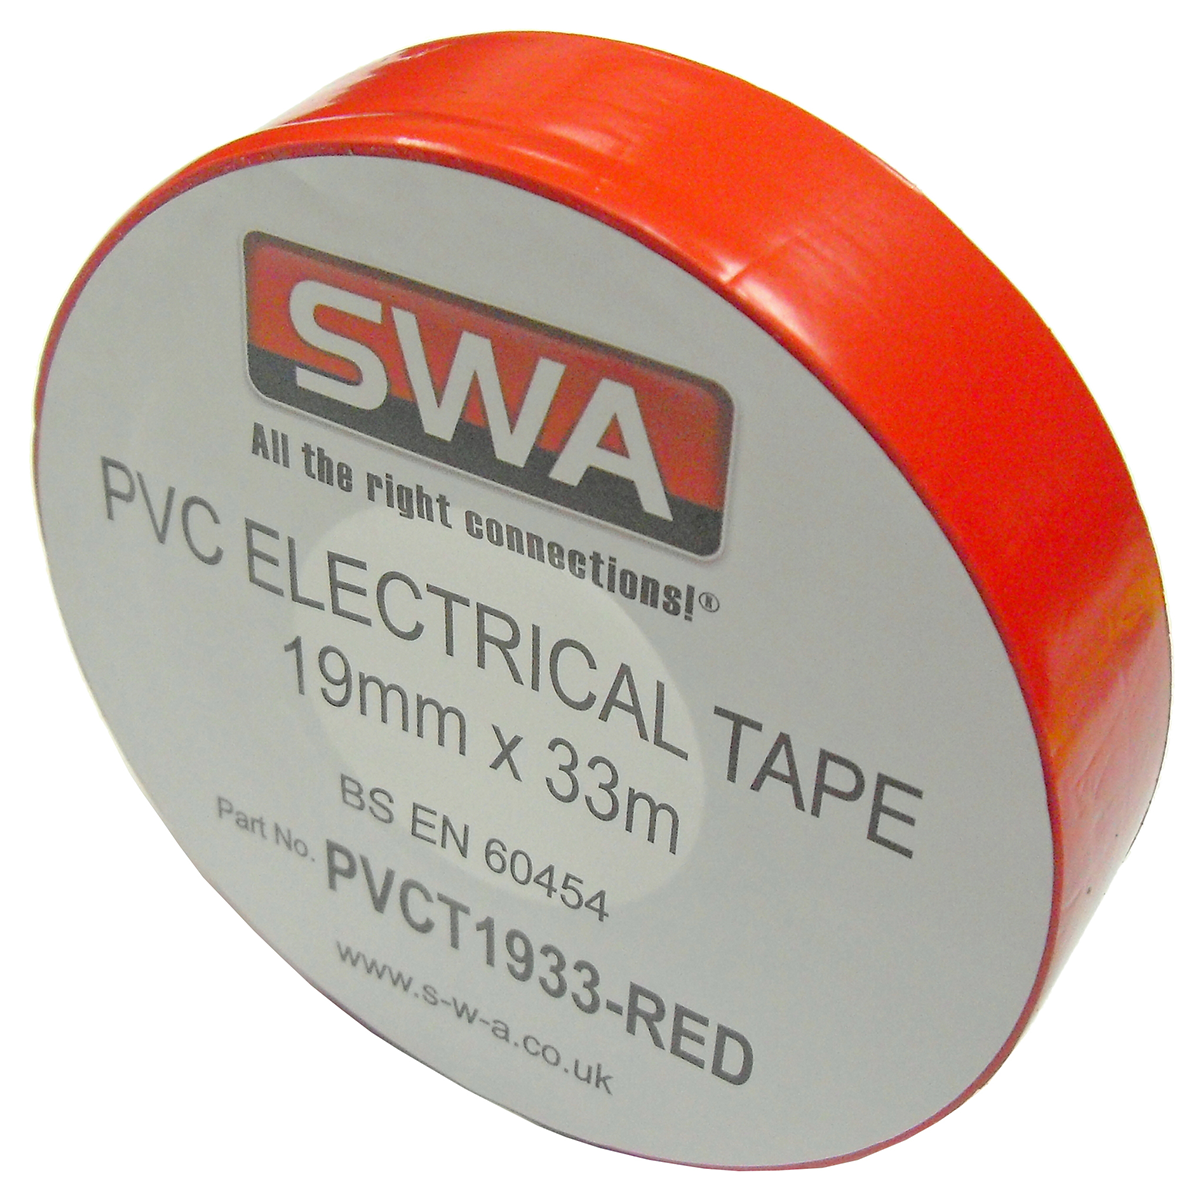 SWA PVCT1933-R Electrical Tape Red PVC